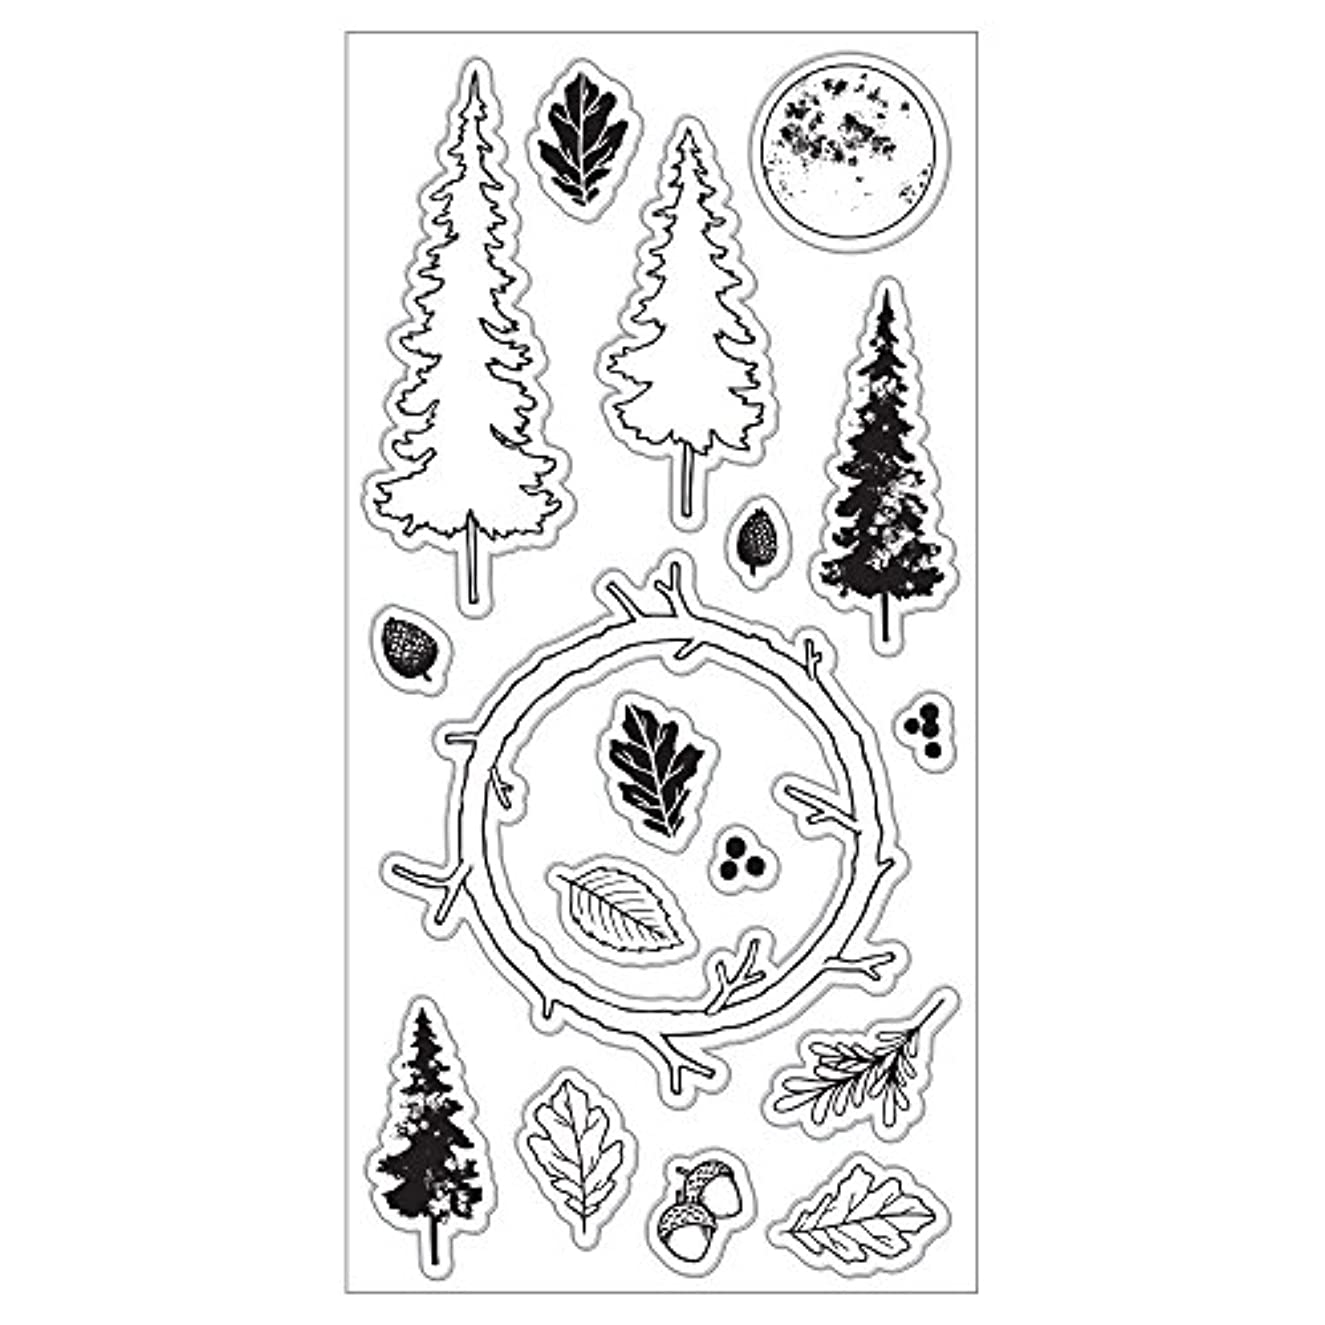 Fiskars Crafts 177290-1001 Enchanted Forest 4x8 Clear Stamp